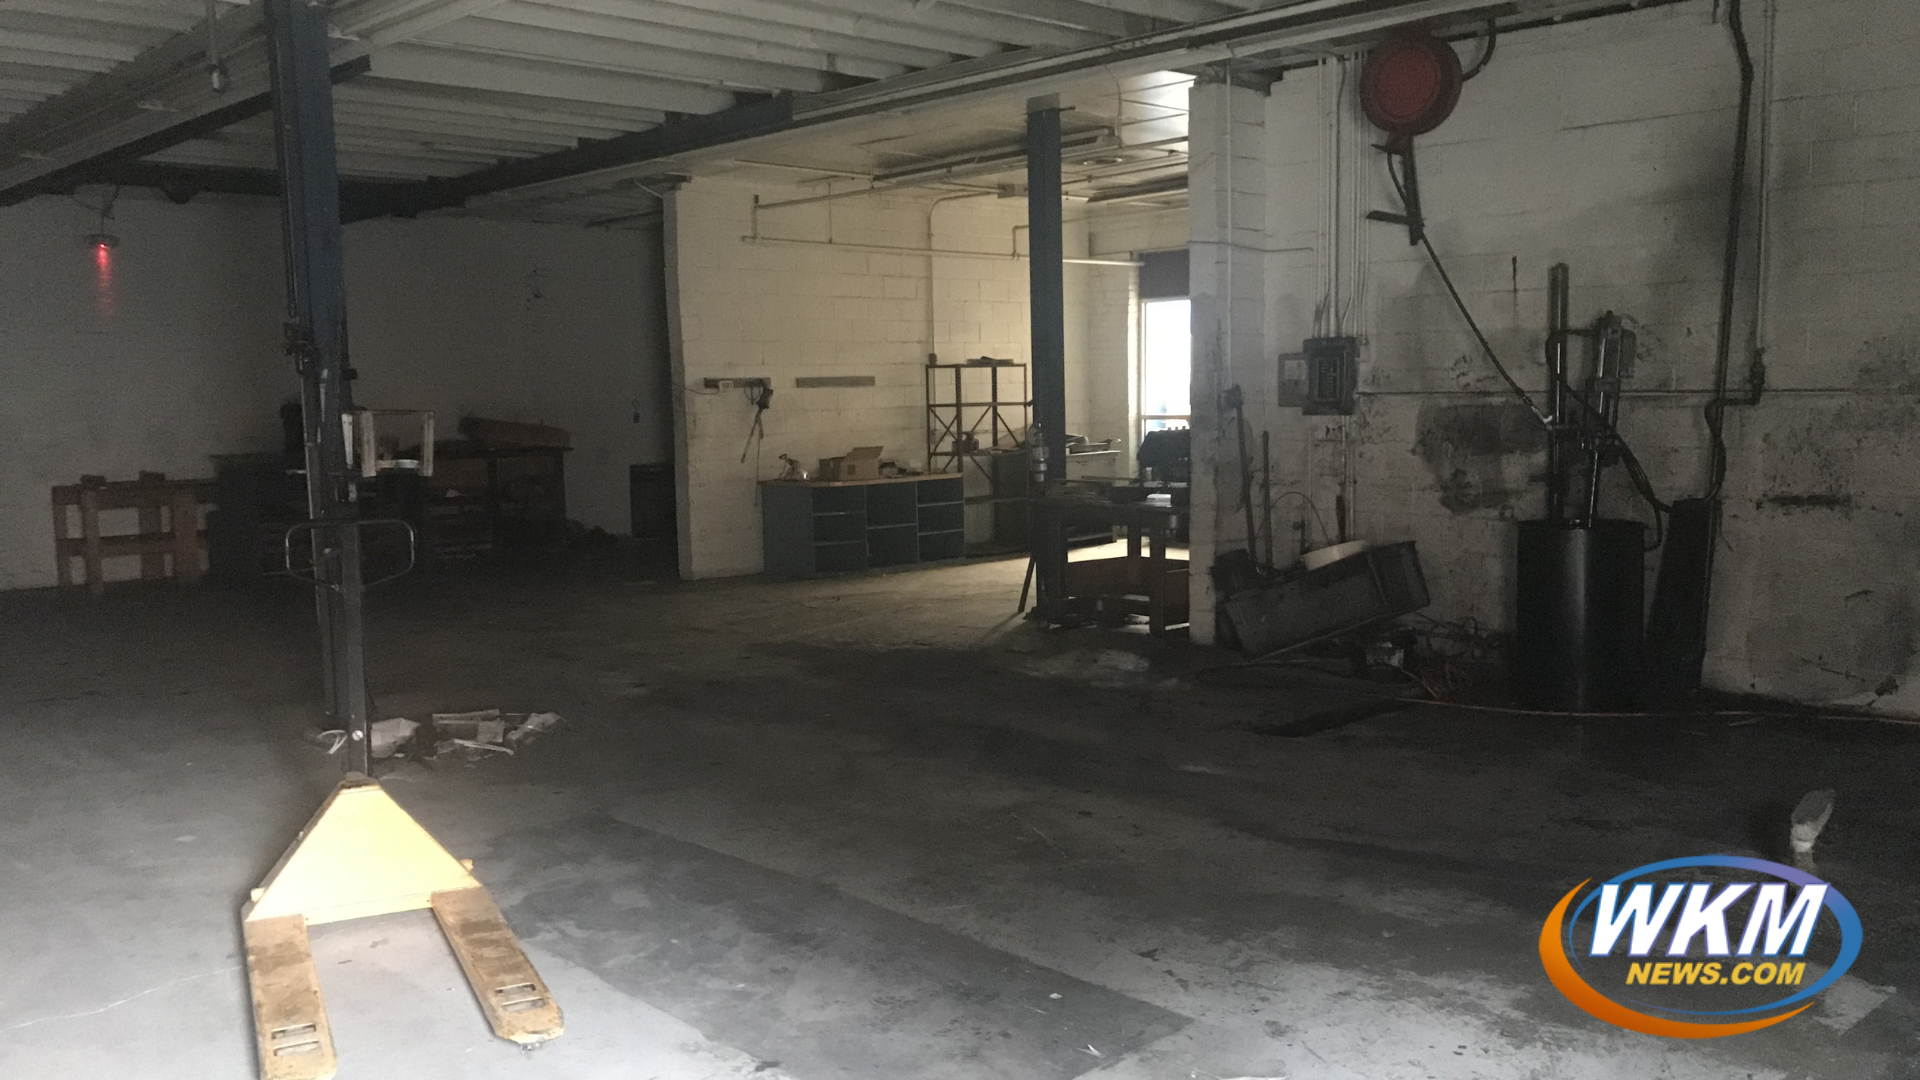 Madison Courier's Printing Press Removed After 45 Years of Hard Work